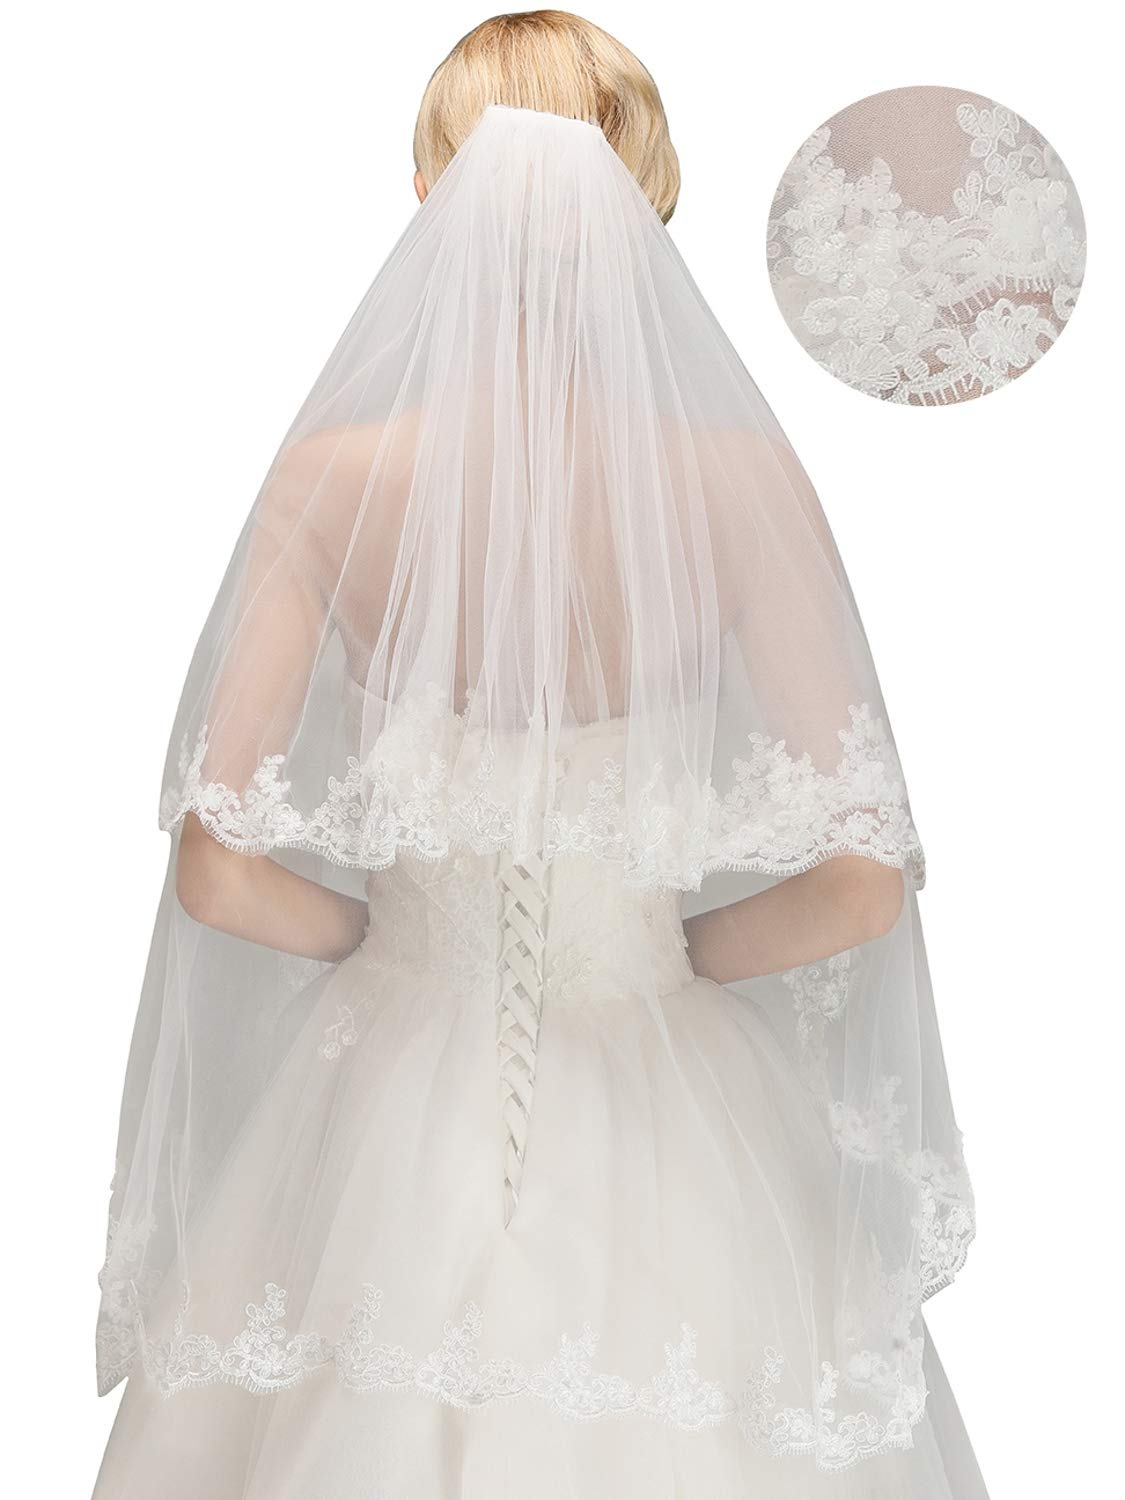 Women's Bridal Tulle Veils with Comb Lace Edge Wedding Veils for Bride,White by MisShow (Image #3)